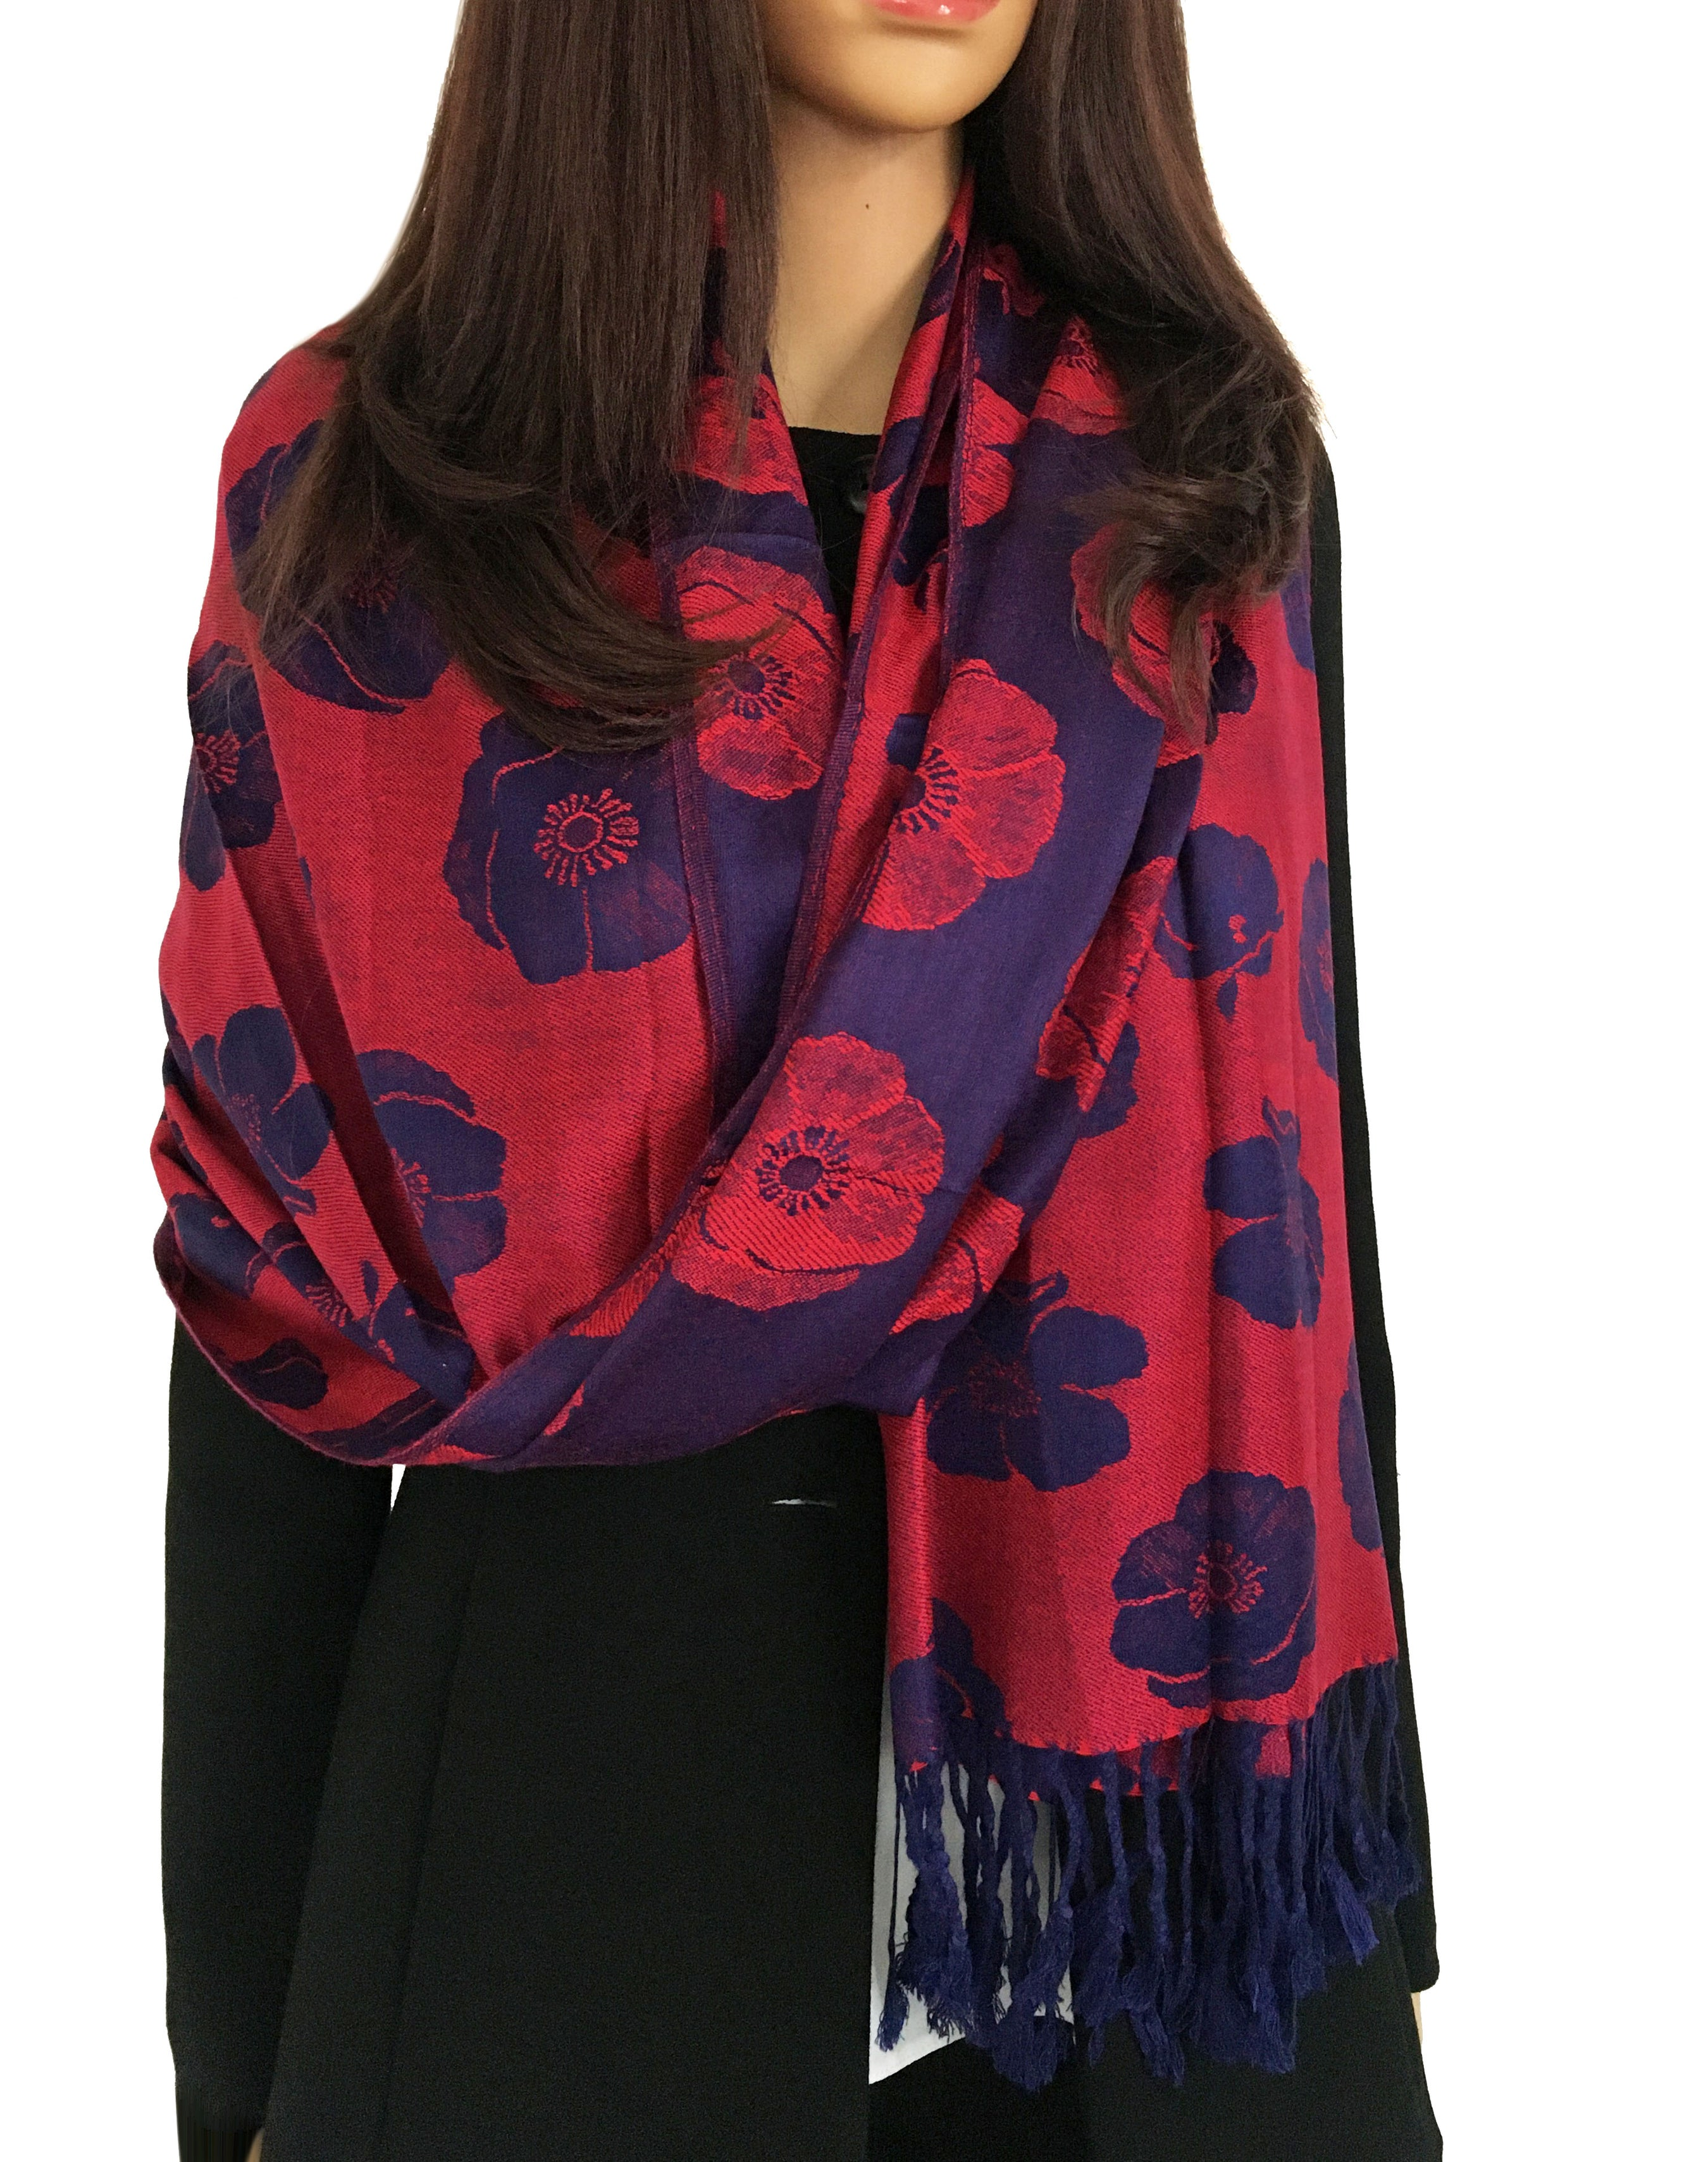 LARGE REVERSIBLE NAVY BLUE AND RED POPPY PASHMINA SHAWL SCARF